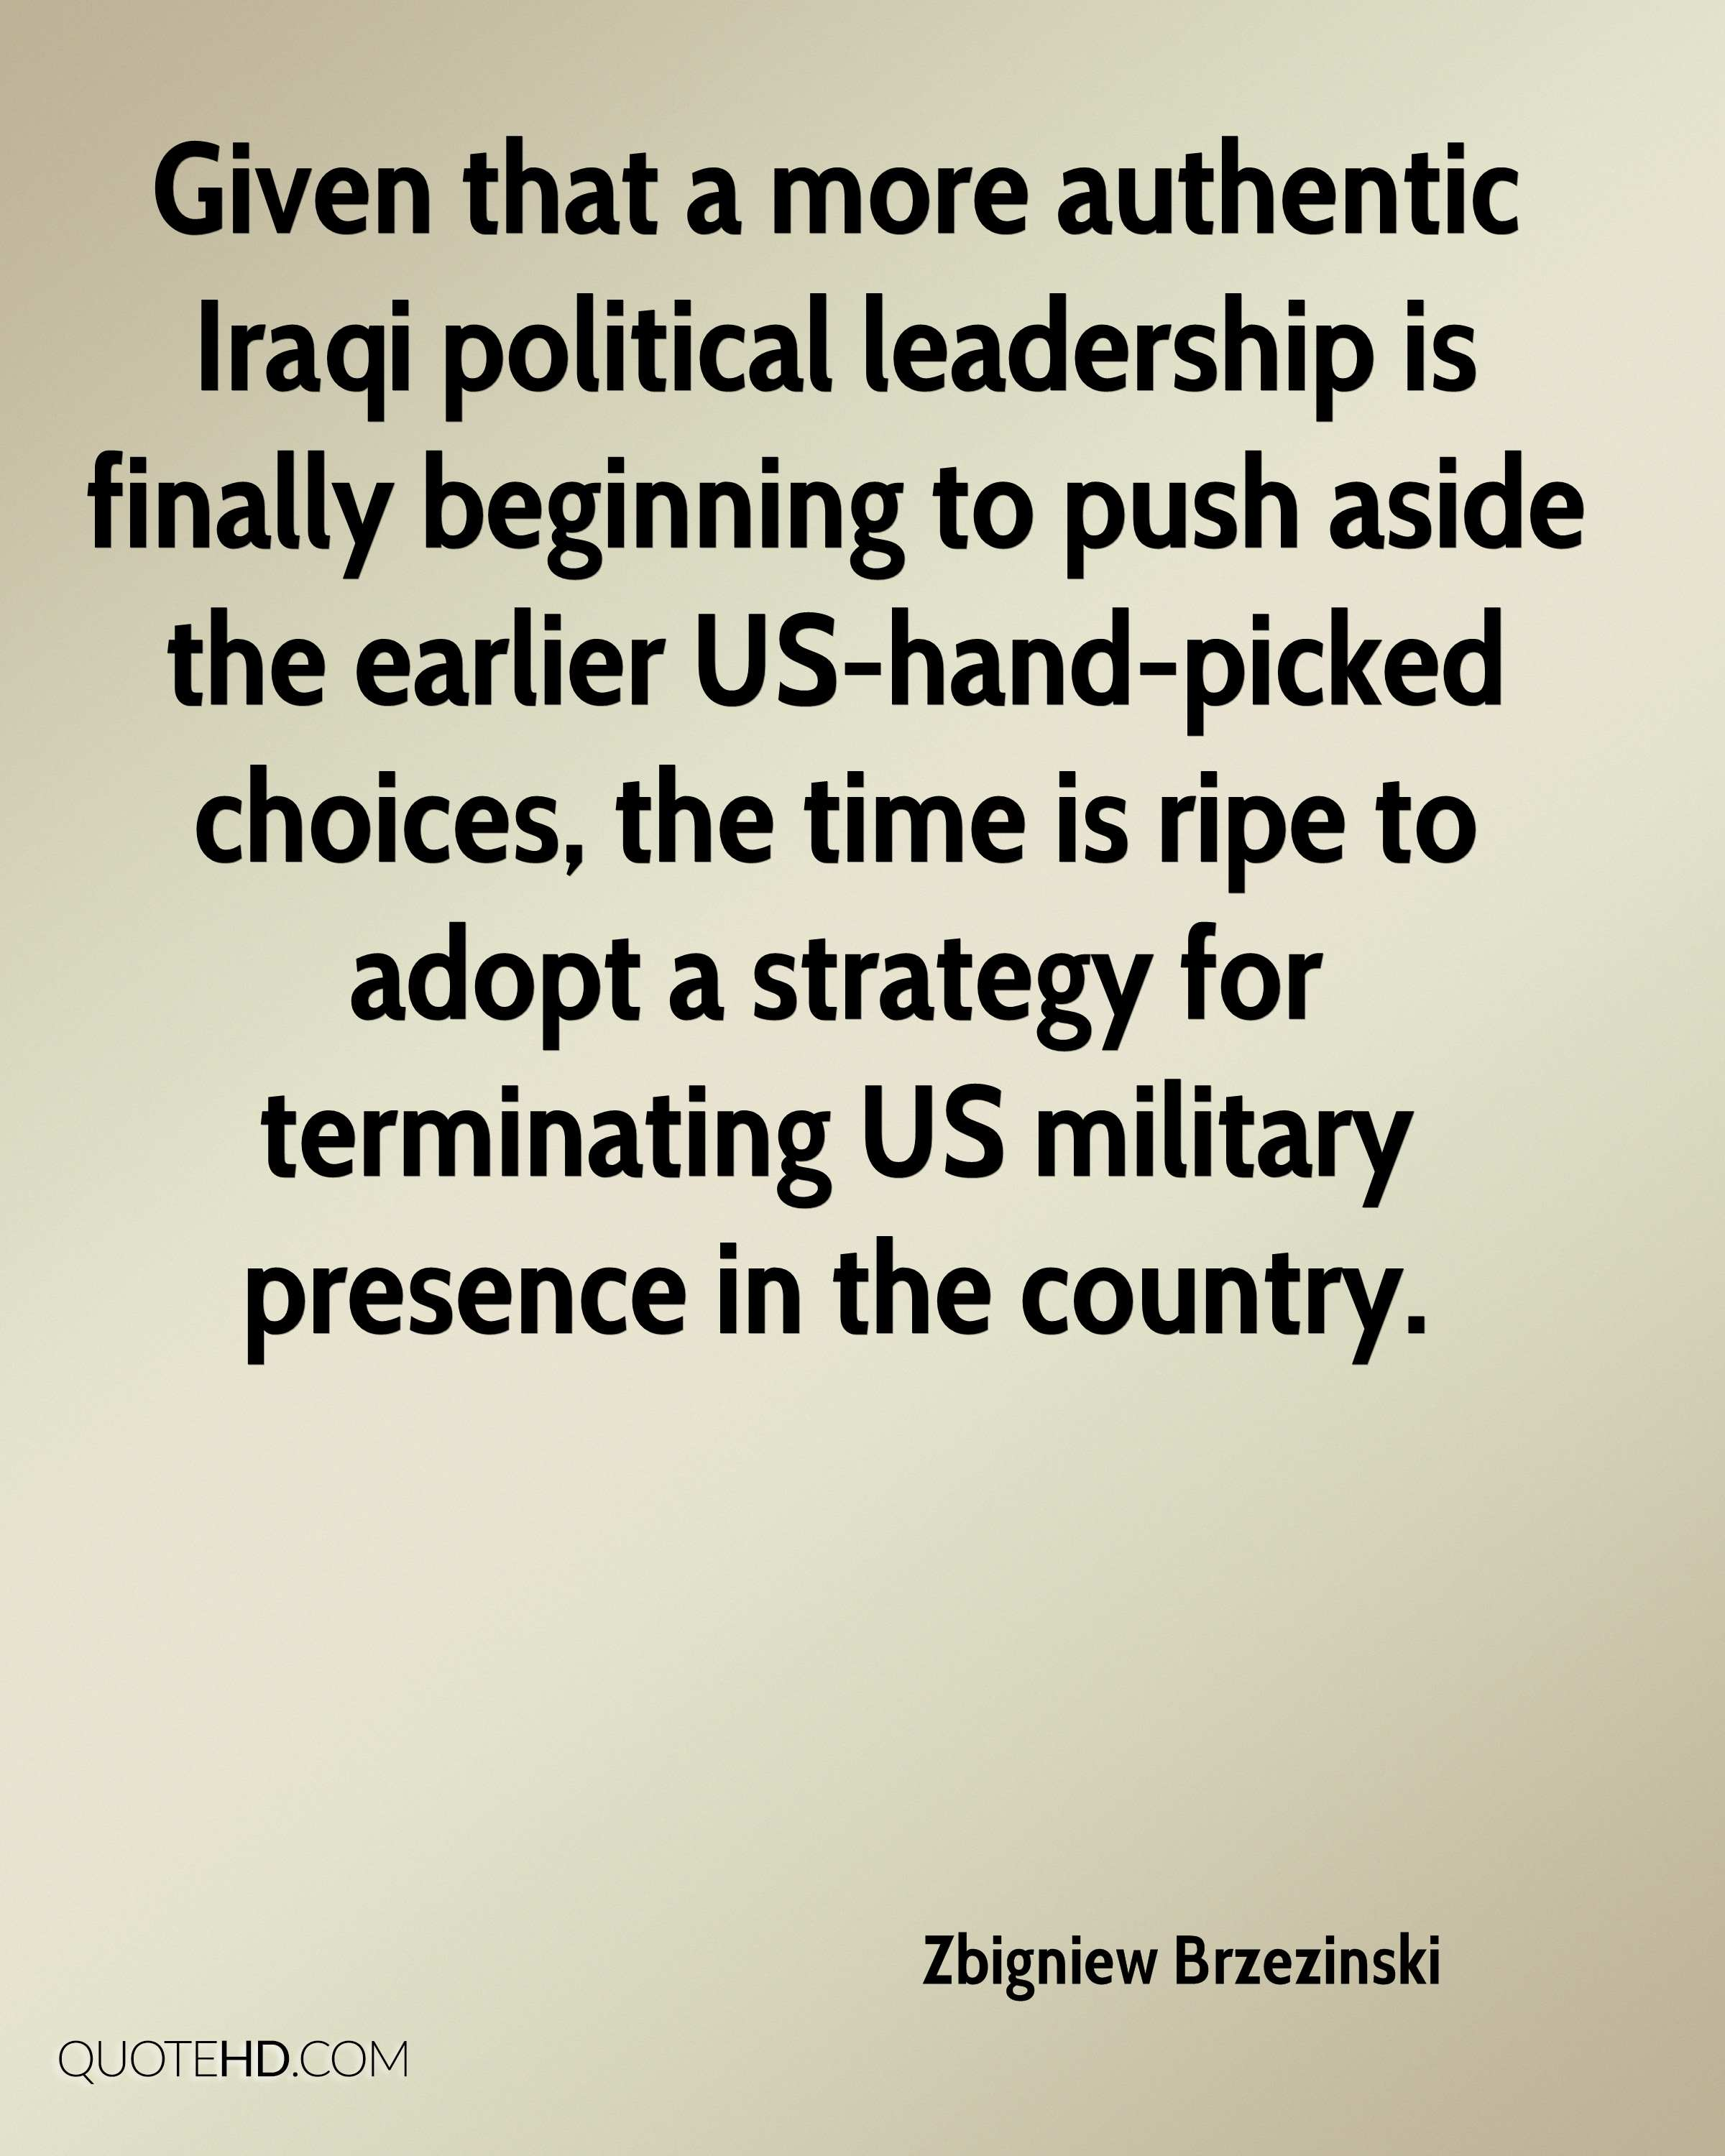 Given that a more authentic Iraqi political leadership is finally beginning to push aside the earlier US-hand-picked choices, the time is ripe to adopt a strategy for terminating US military presence in the country.